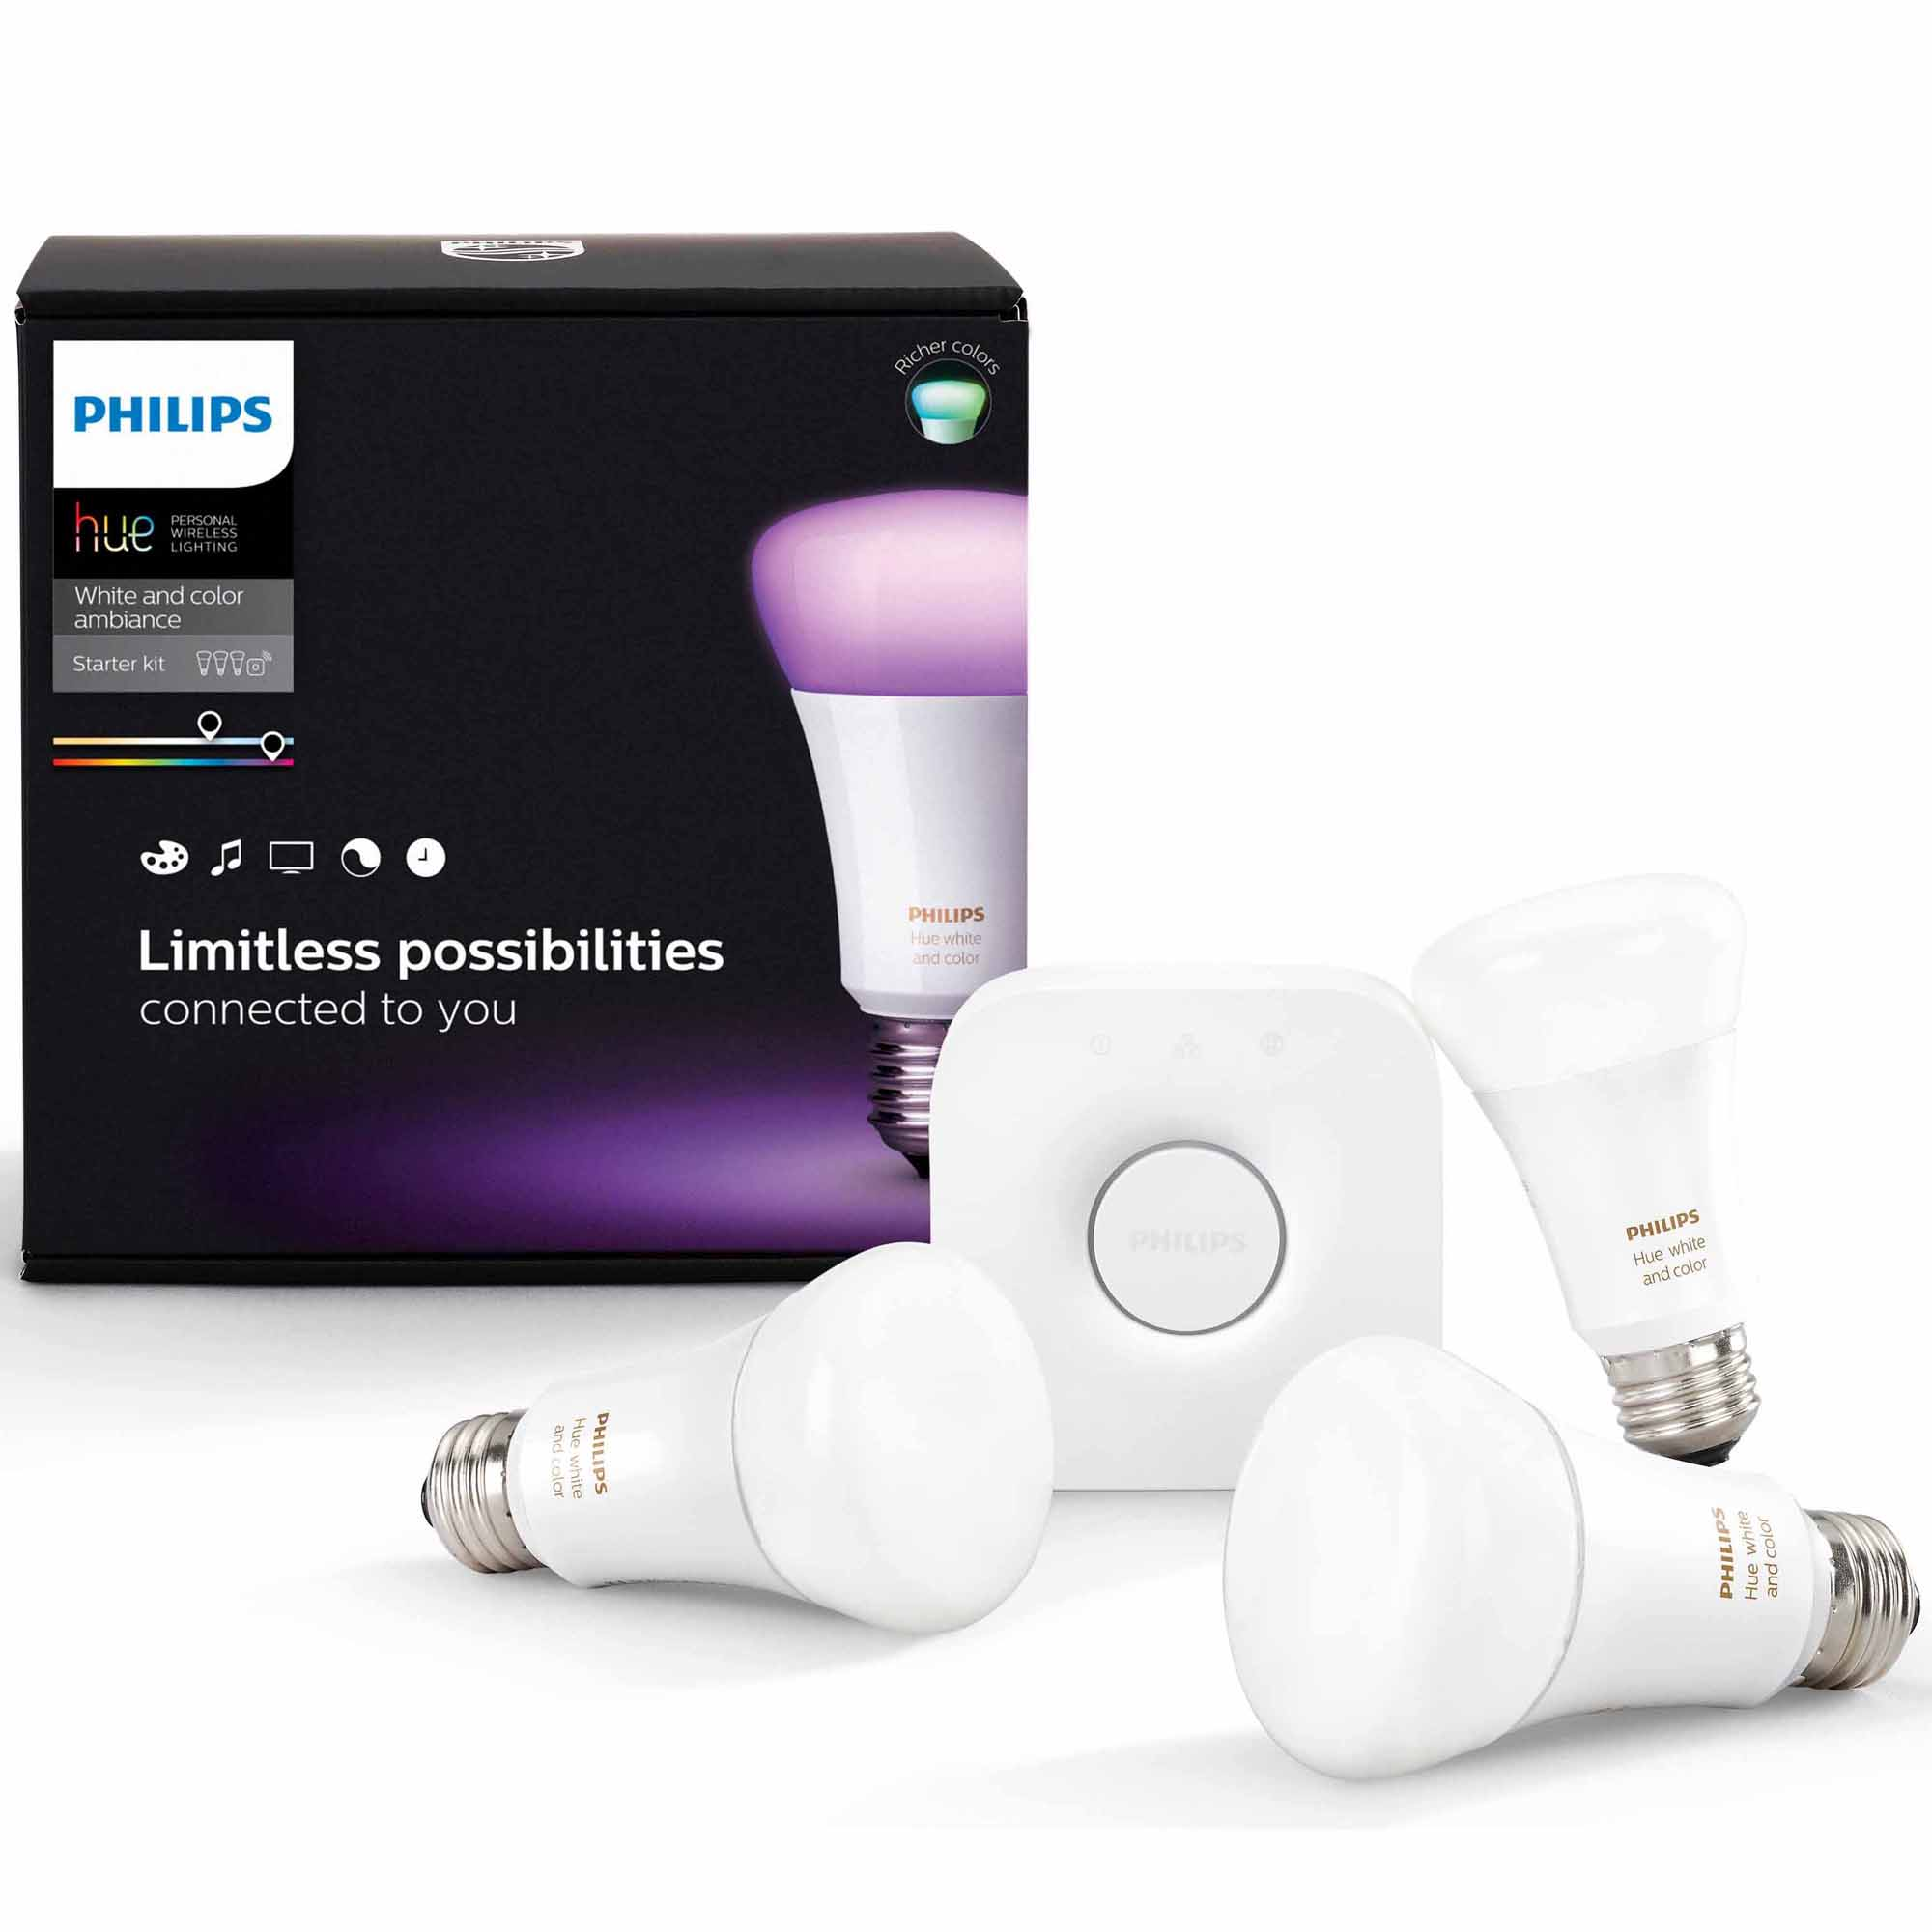 Philips Hue E27 Color Starter Kit - Richer Colors Philips Hue White And Color Ambiance Starter A19 Kit - 3rd Generation With Richer Colors | Shop